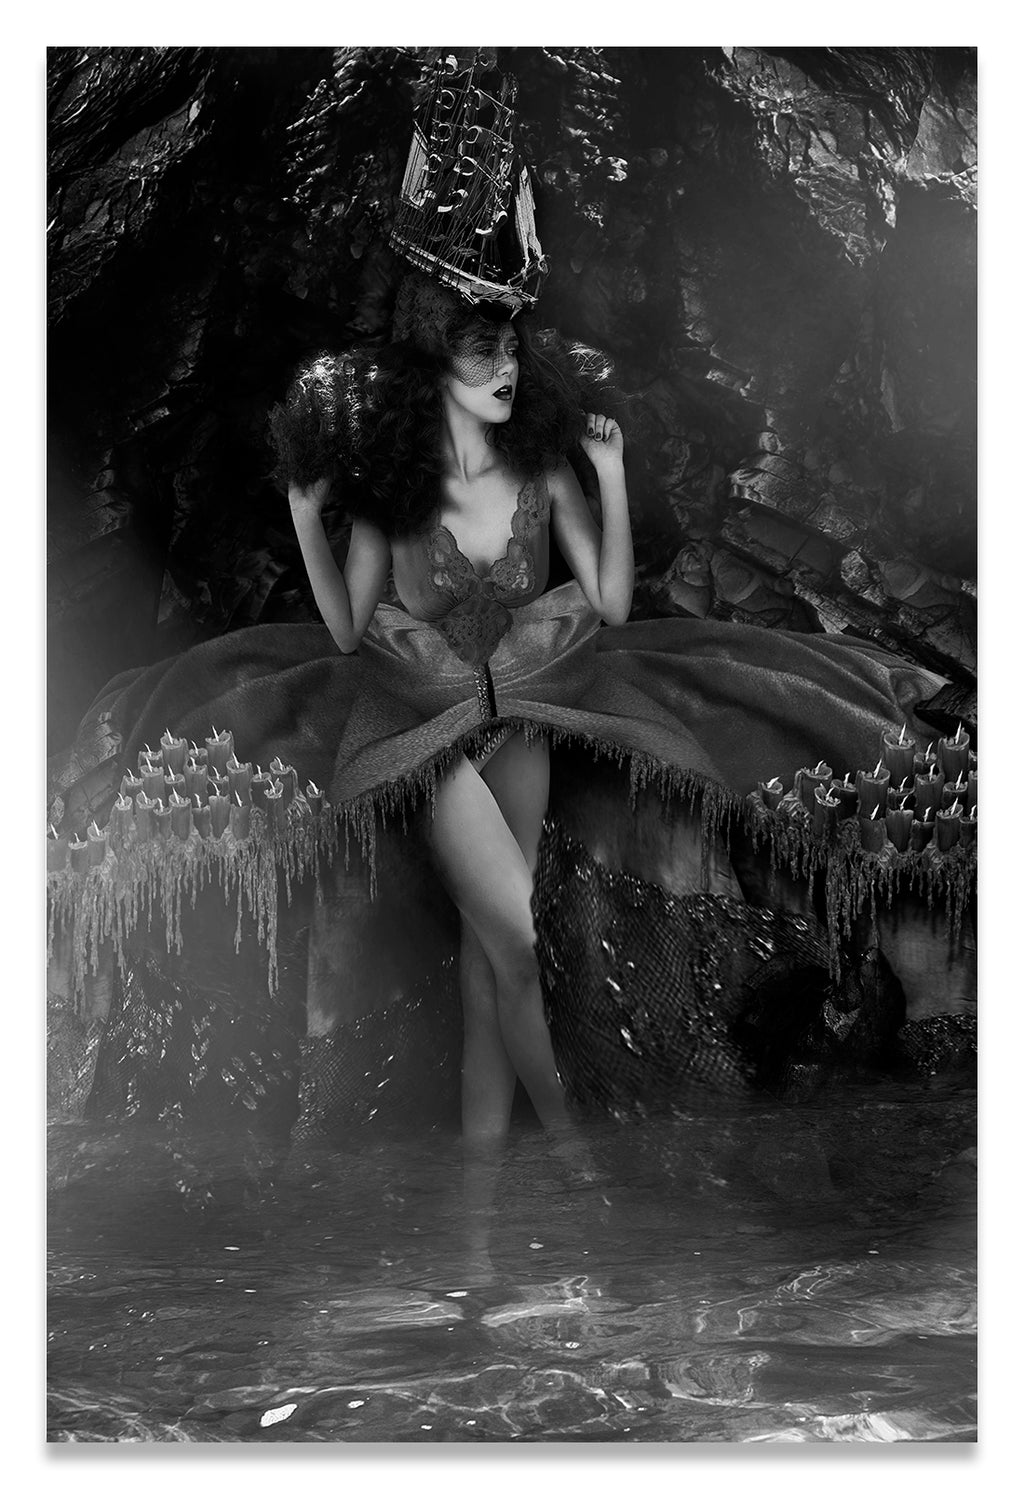 Vertical Black and White Portrait of a Woman Standing in Water in Purgatory; adorned with a Ship Hat and Melted Candles Along Her Dress.